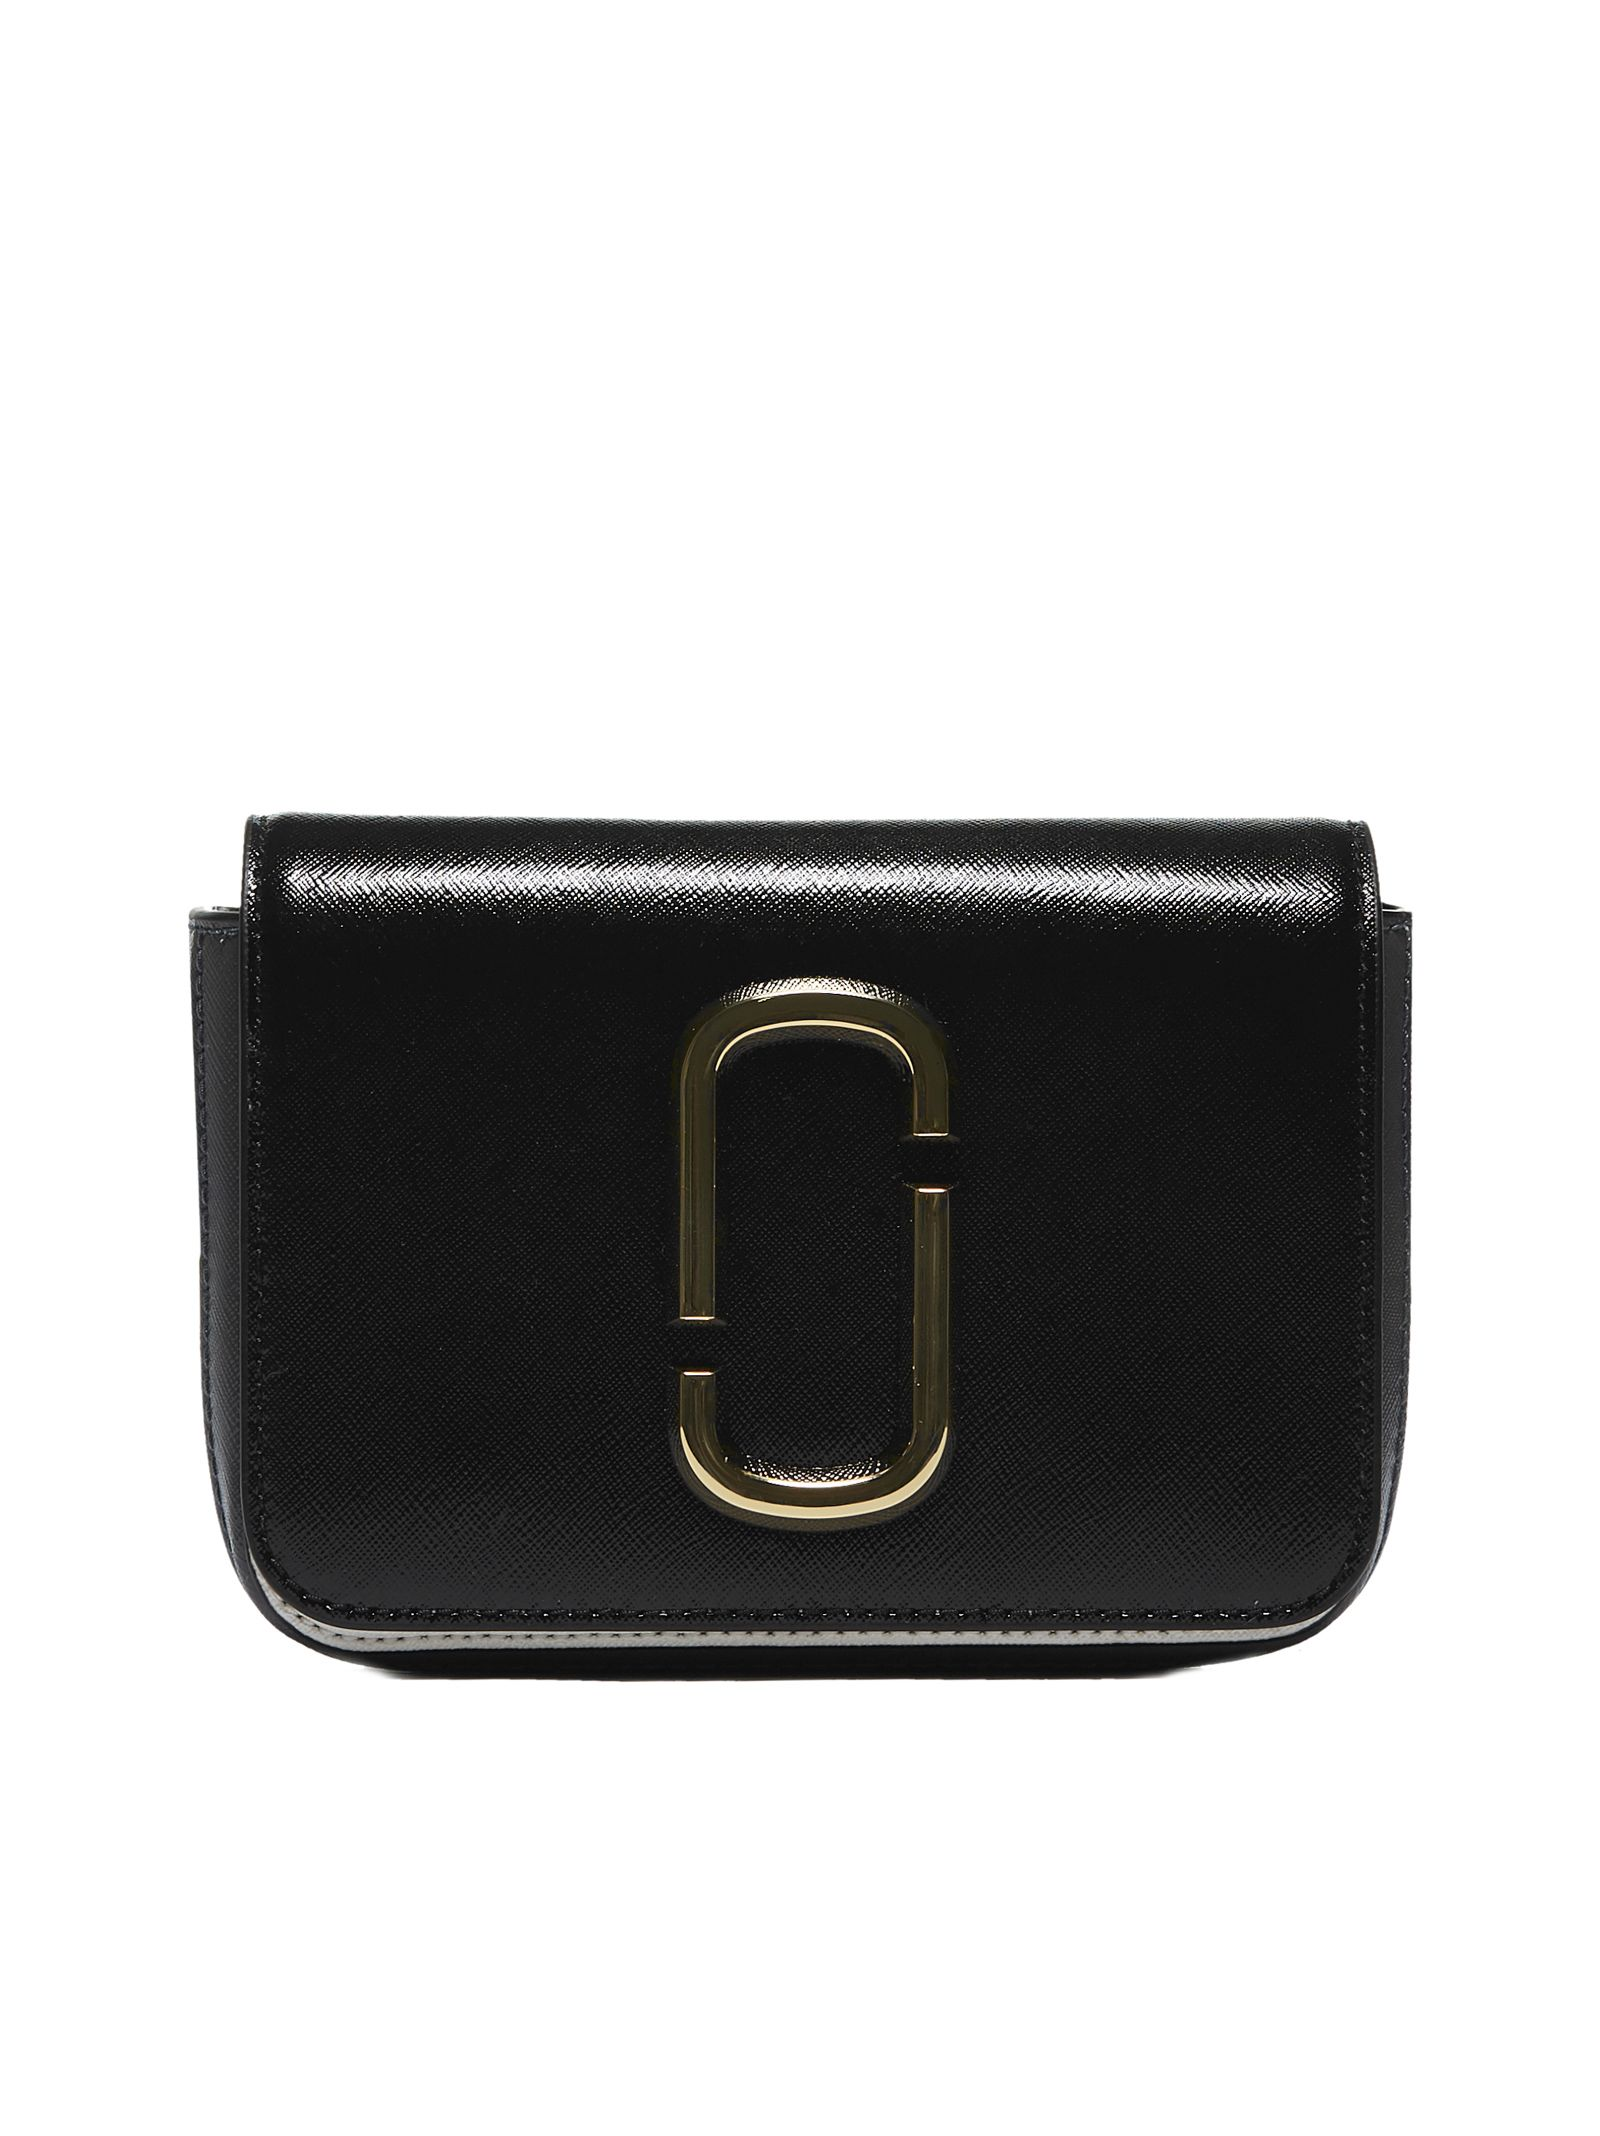 Marc Jacobs Mini Foldover Shoulder Bag